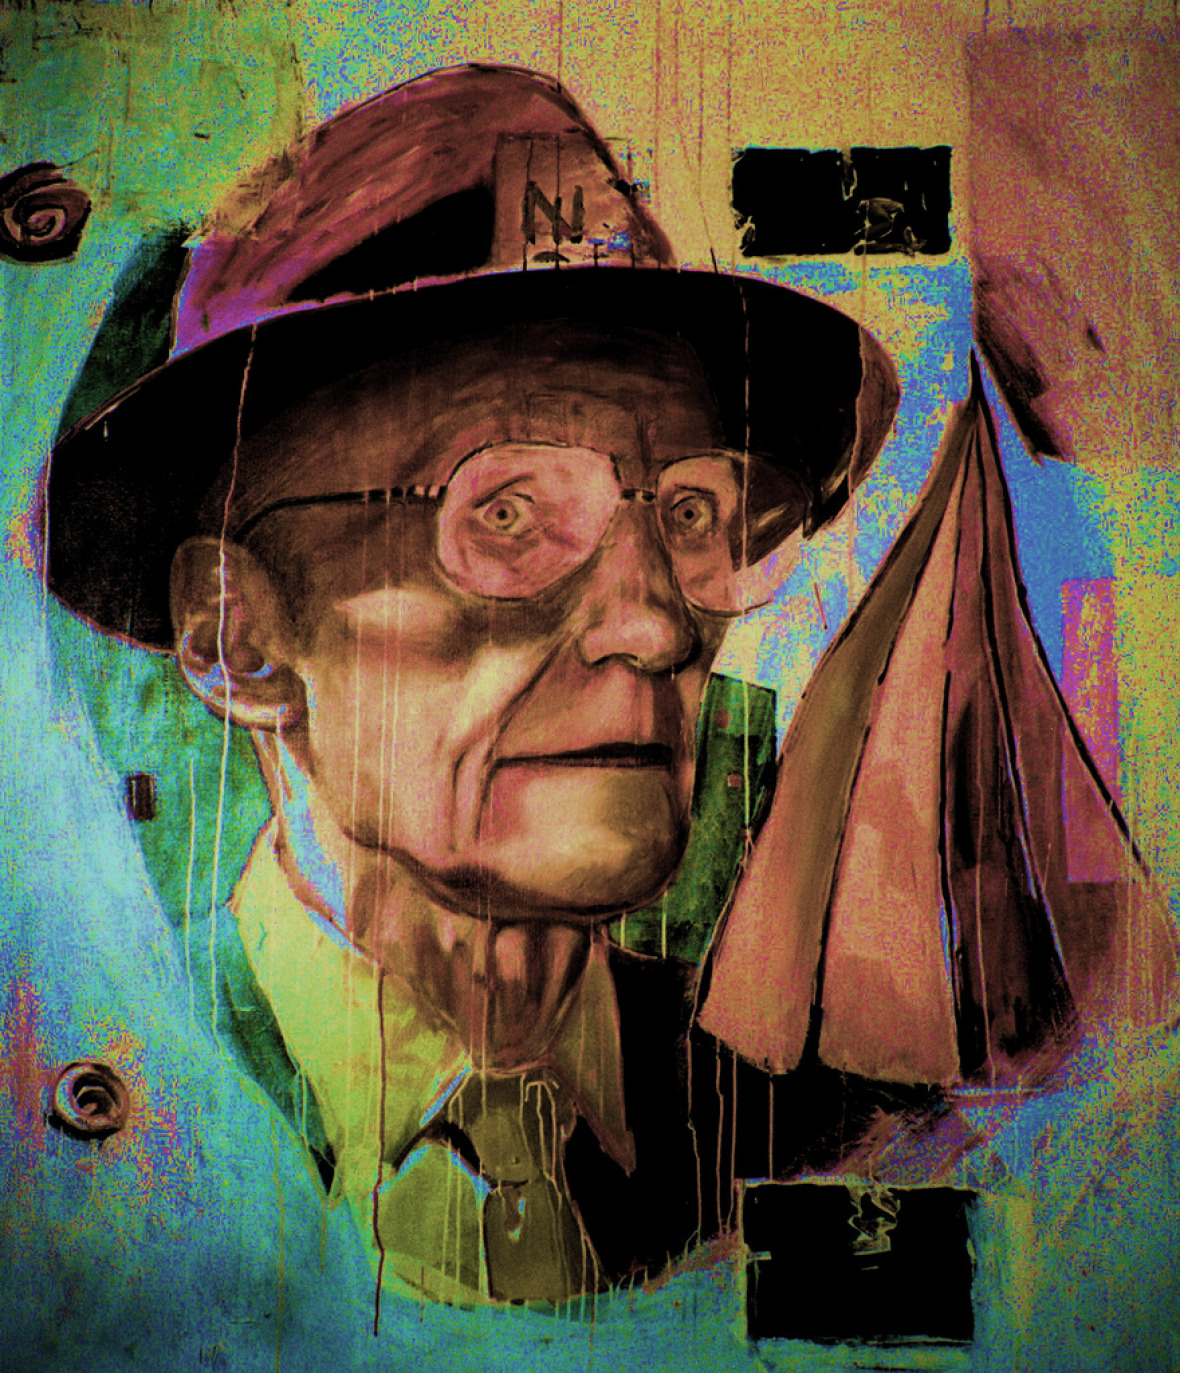 Christiaan Tonnis: William S. Burroughs 3 / Oil on Canvas / 61 x 72.8 inches / 1999 Print